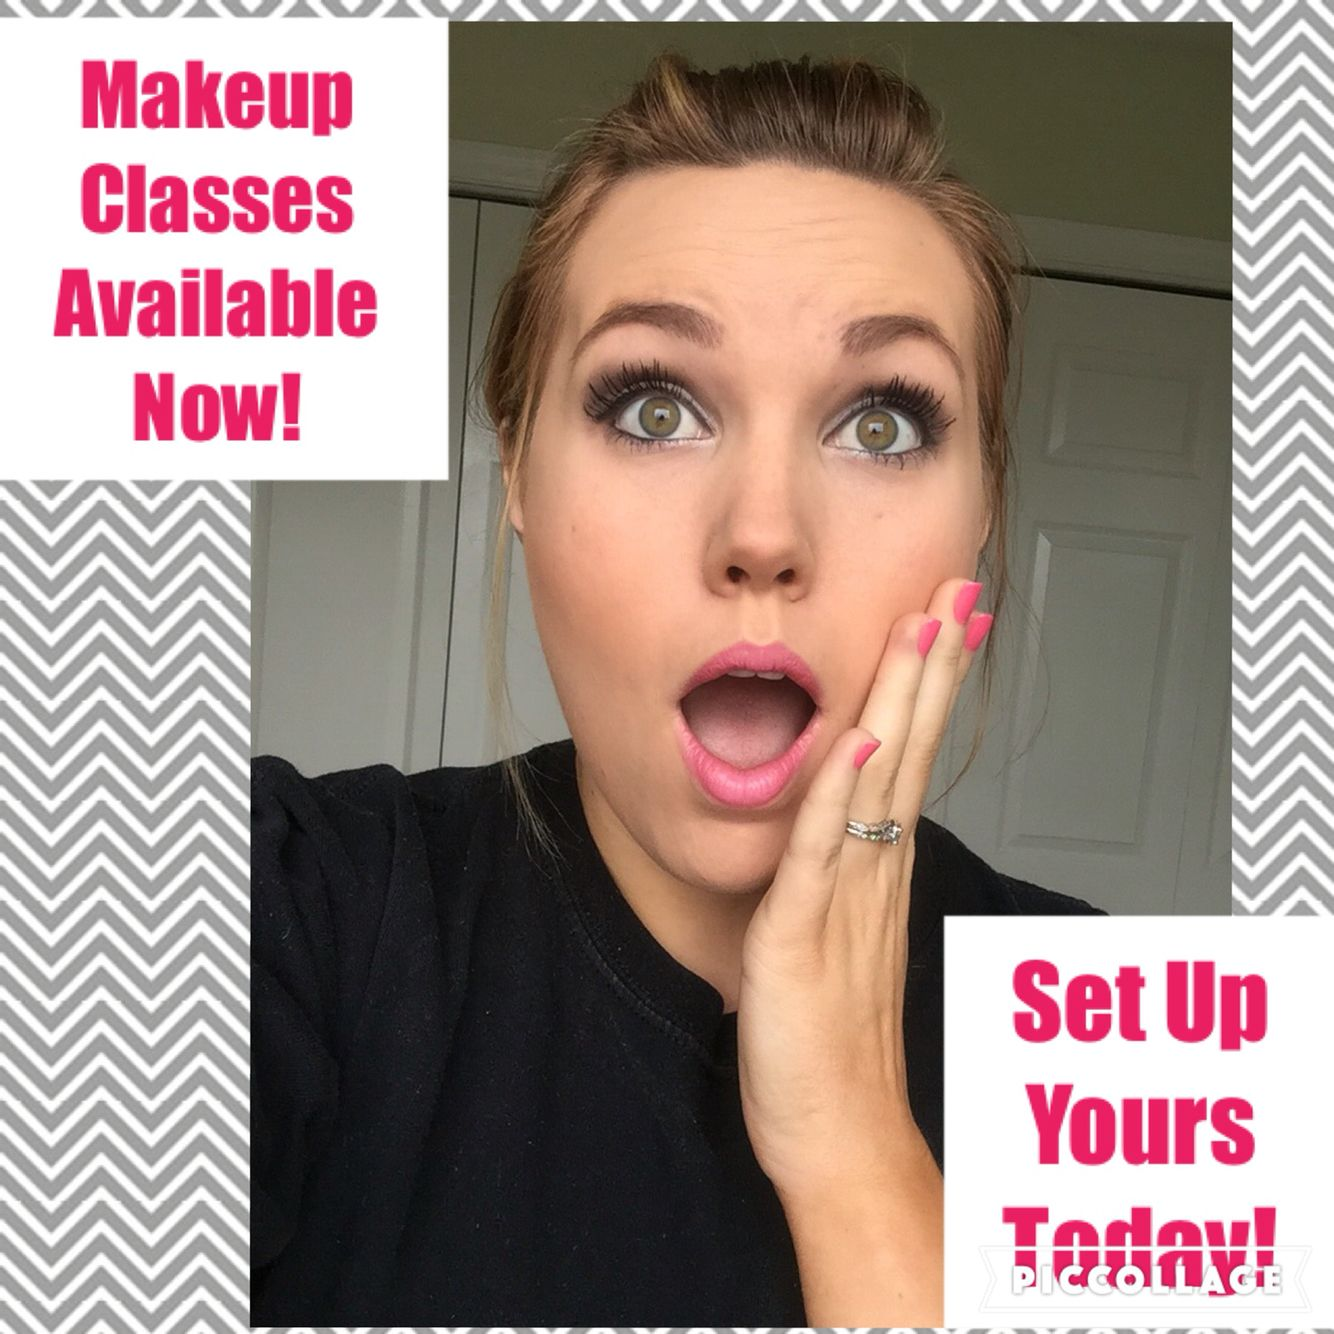 FREE Online Makeup Classes available! Makeup video